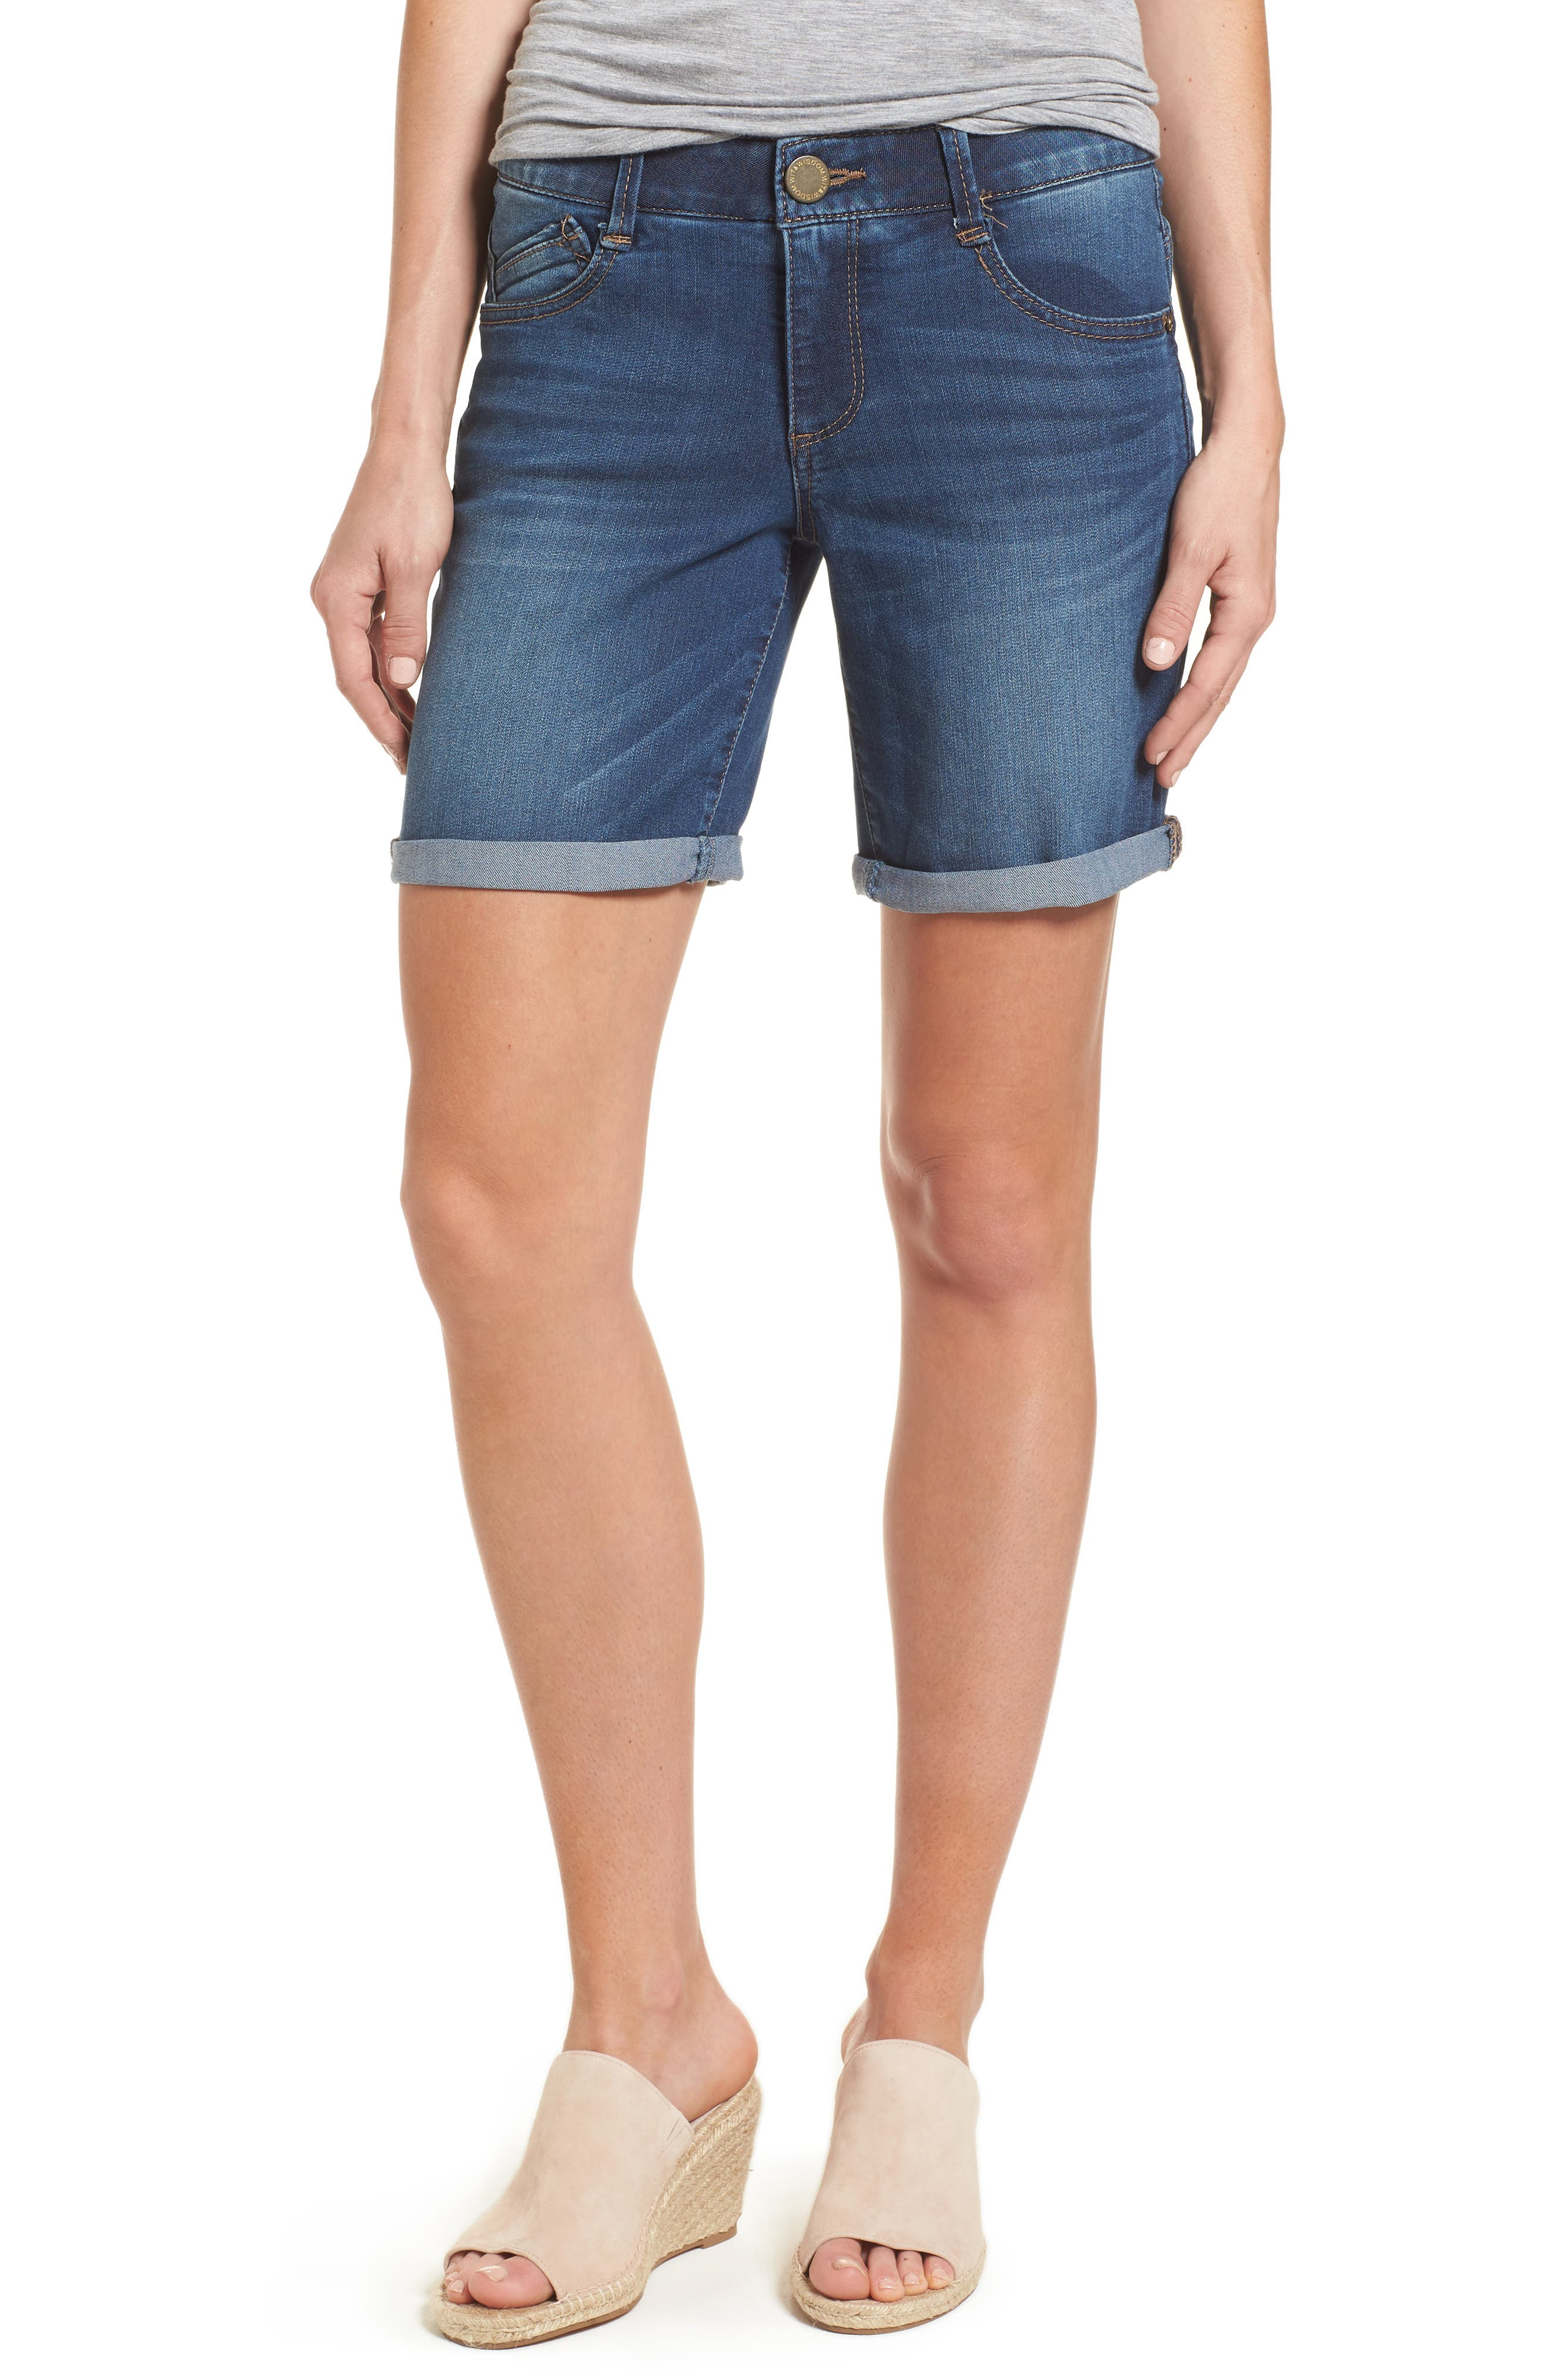 Ab-solution Cuffed Denim Shorts,                             Main thumbnail 1, color,                             Blue